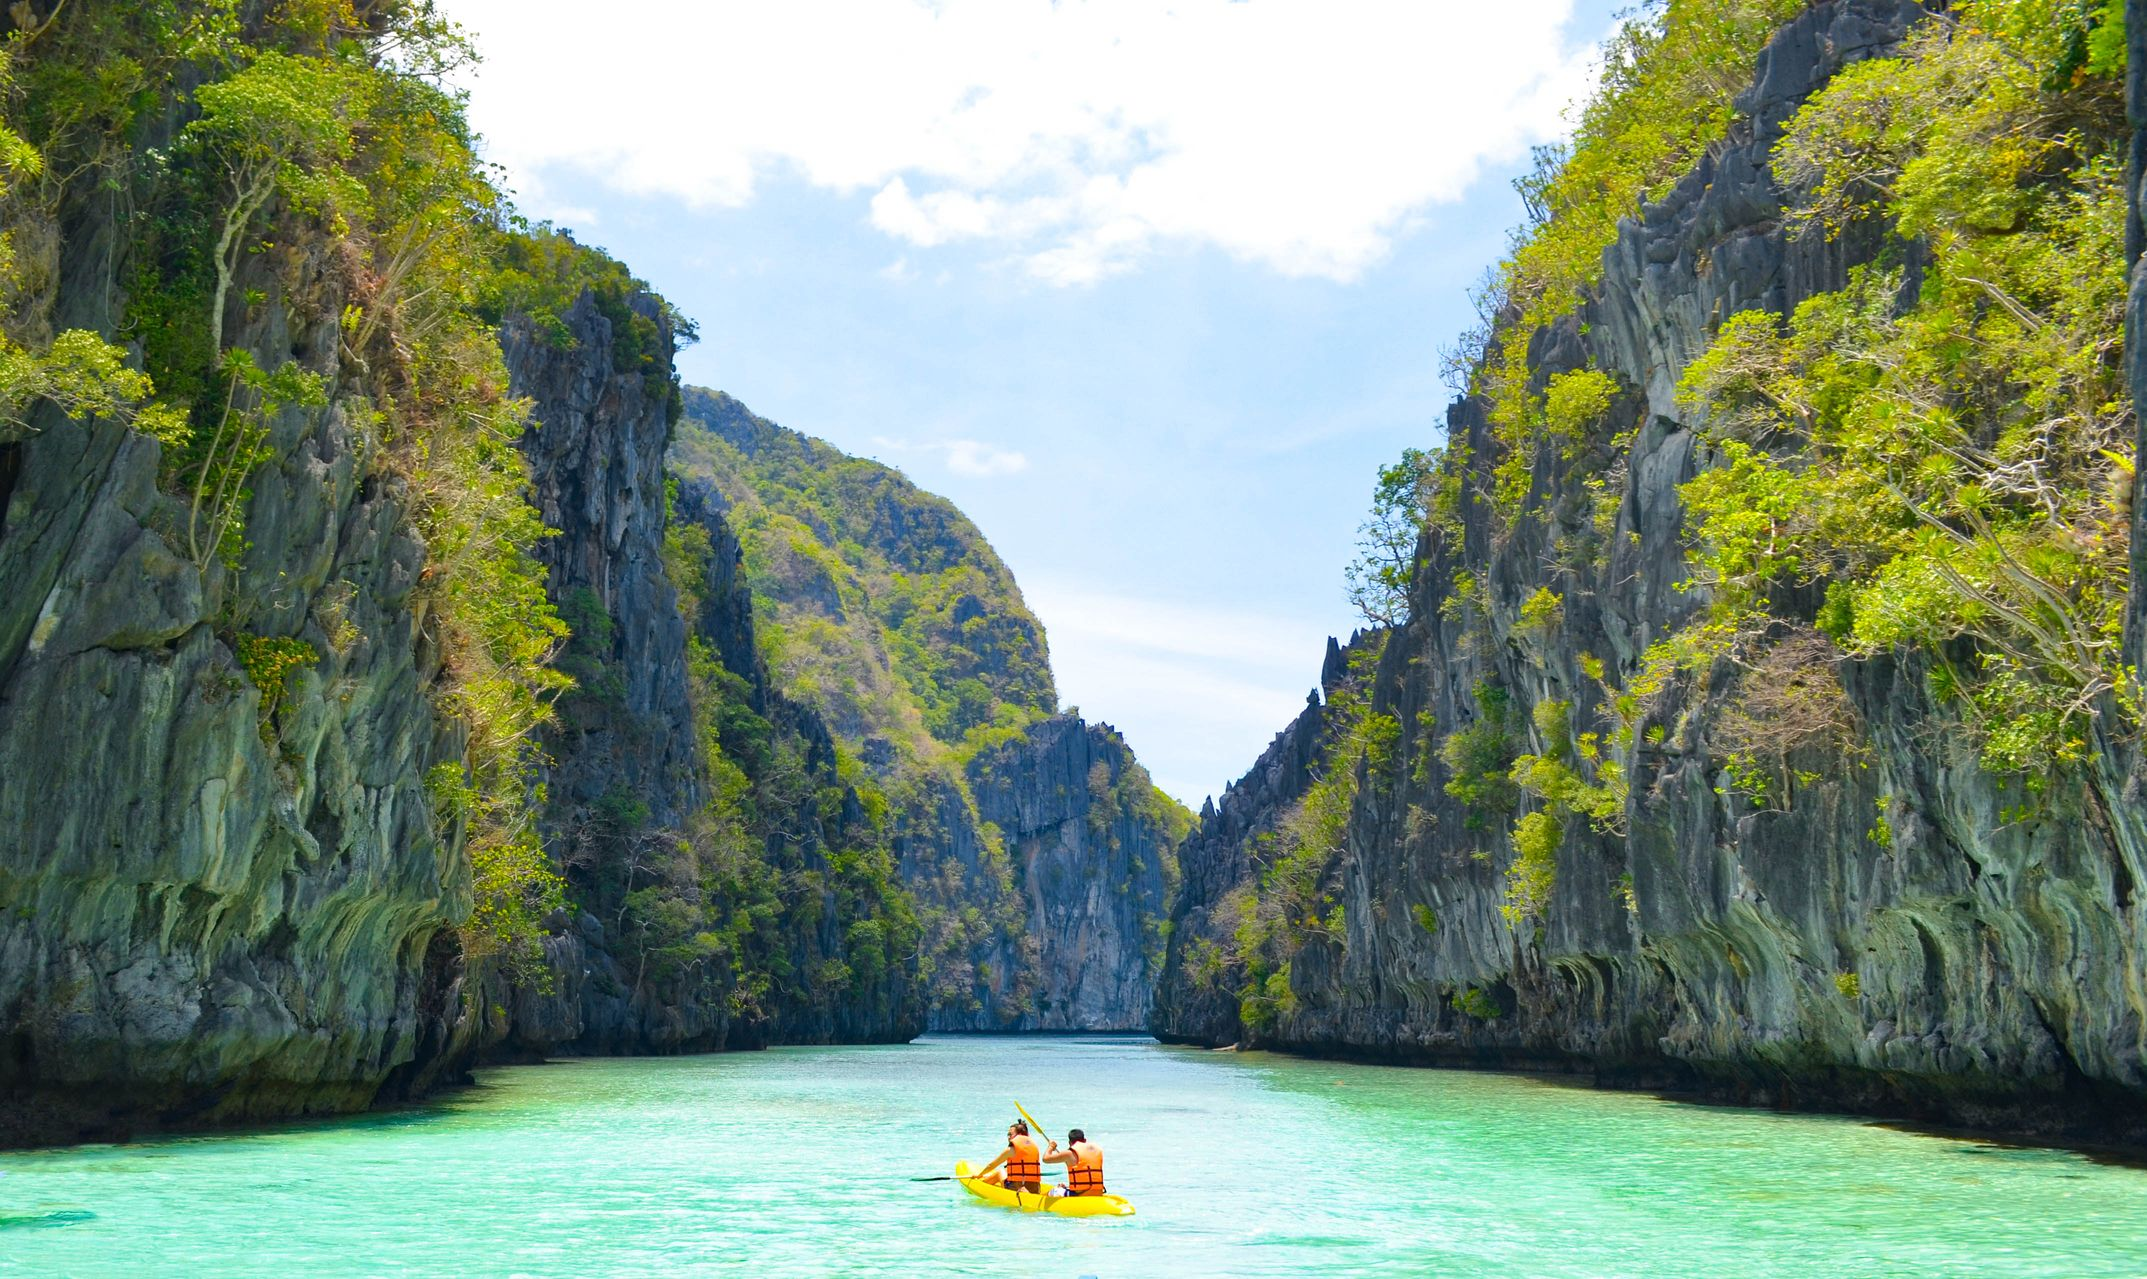 Two people row an small boat through jade waters flanked by towering limestone cliffs in El Nido, Palawan, Philippines